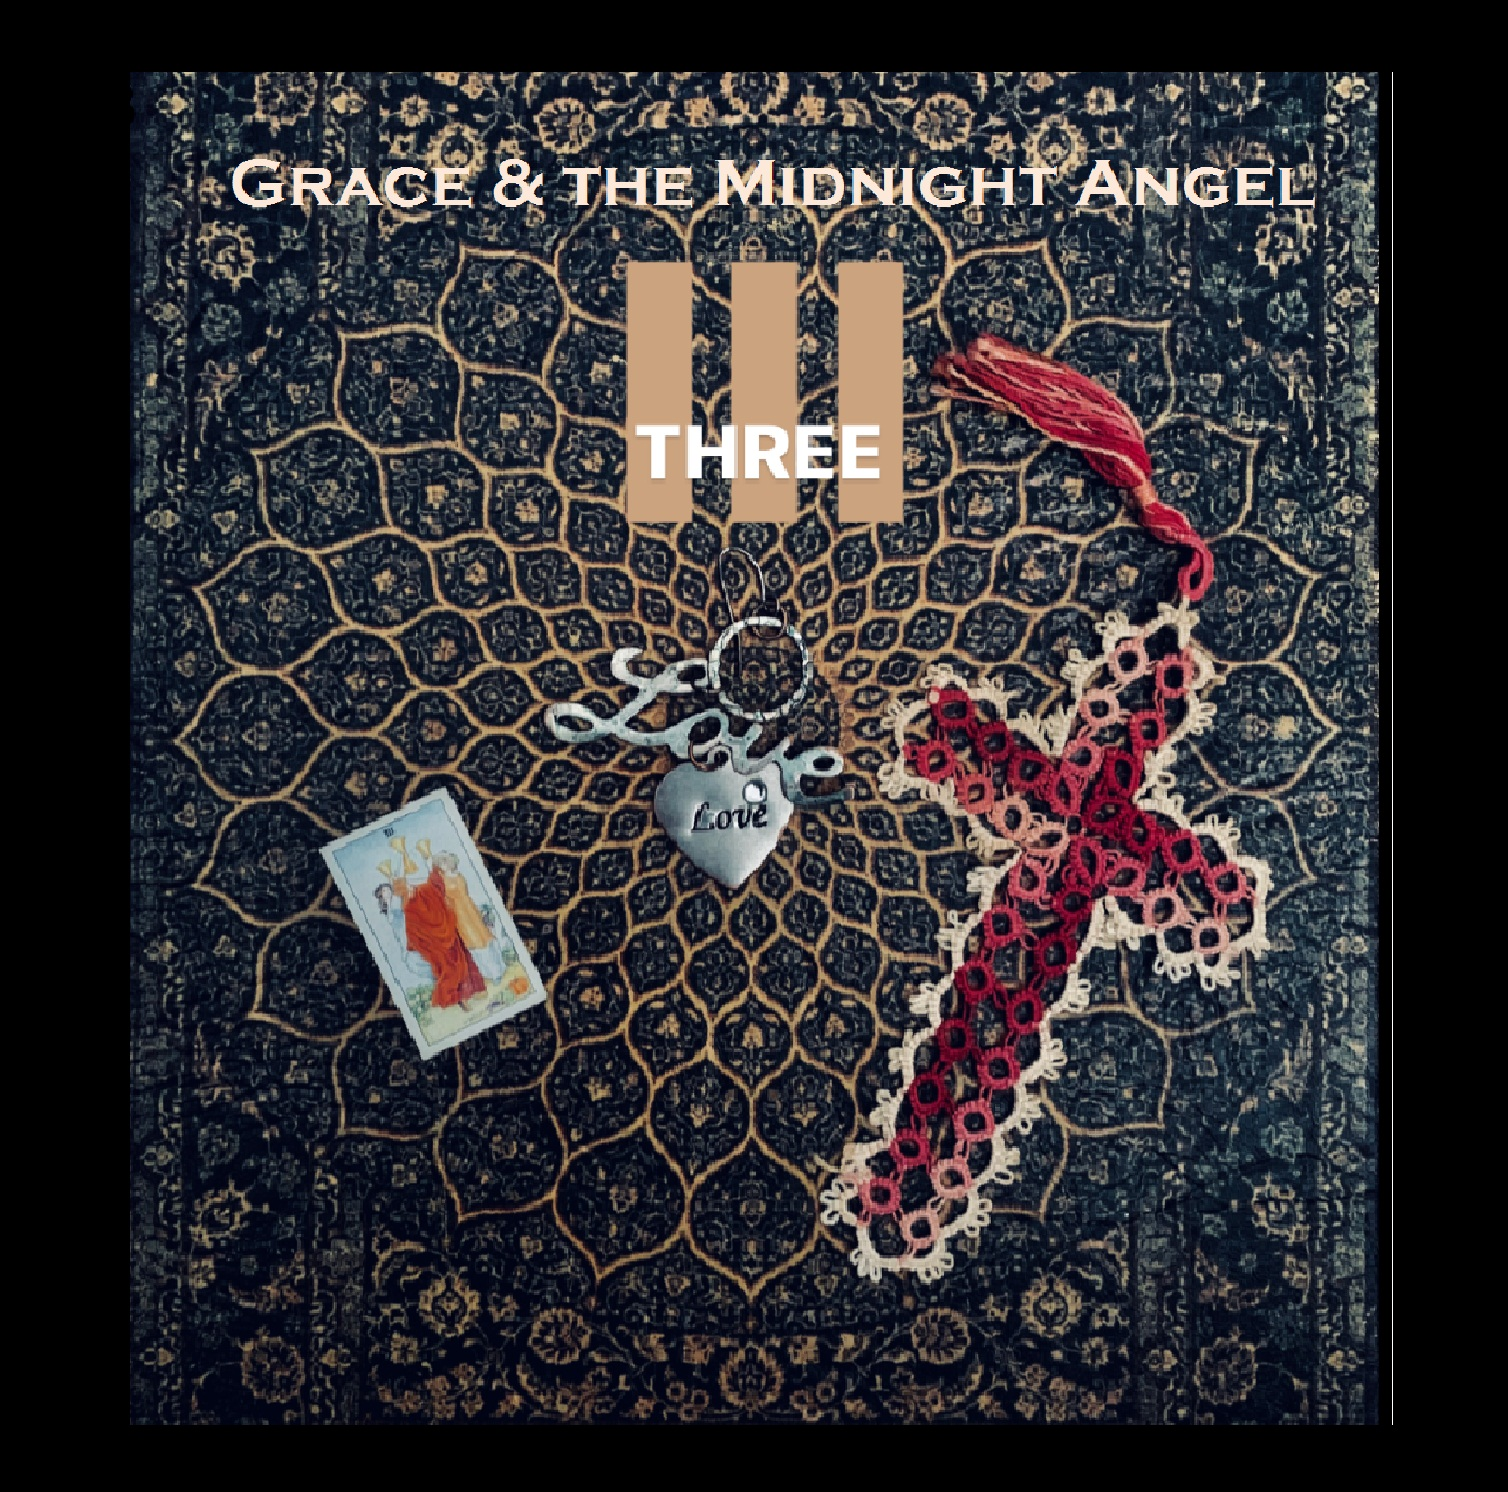 Grace & the Midnight Angel - original music and lyrics by BMI singer-songwriter Melanie Silos